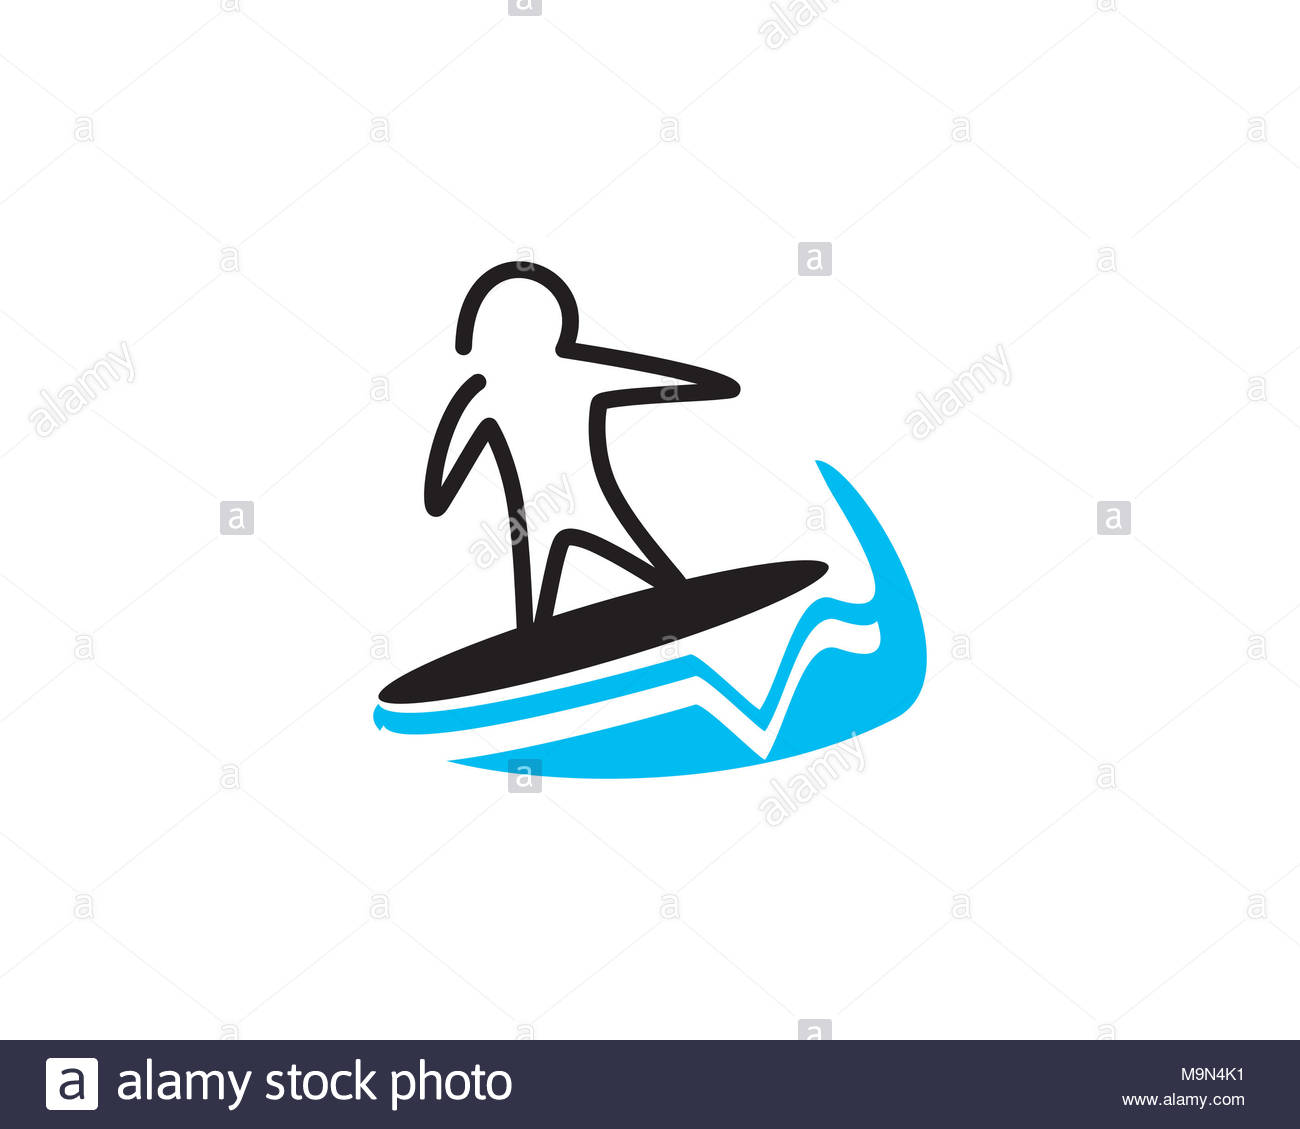 1300x1129 Hipster Surfer Stock Photos Amp Hipster Surfer Stock Images